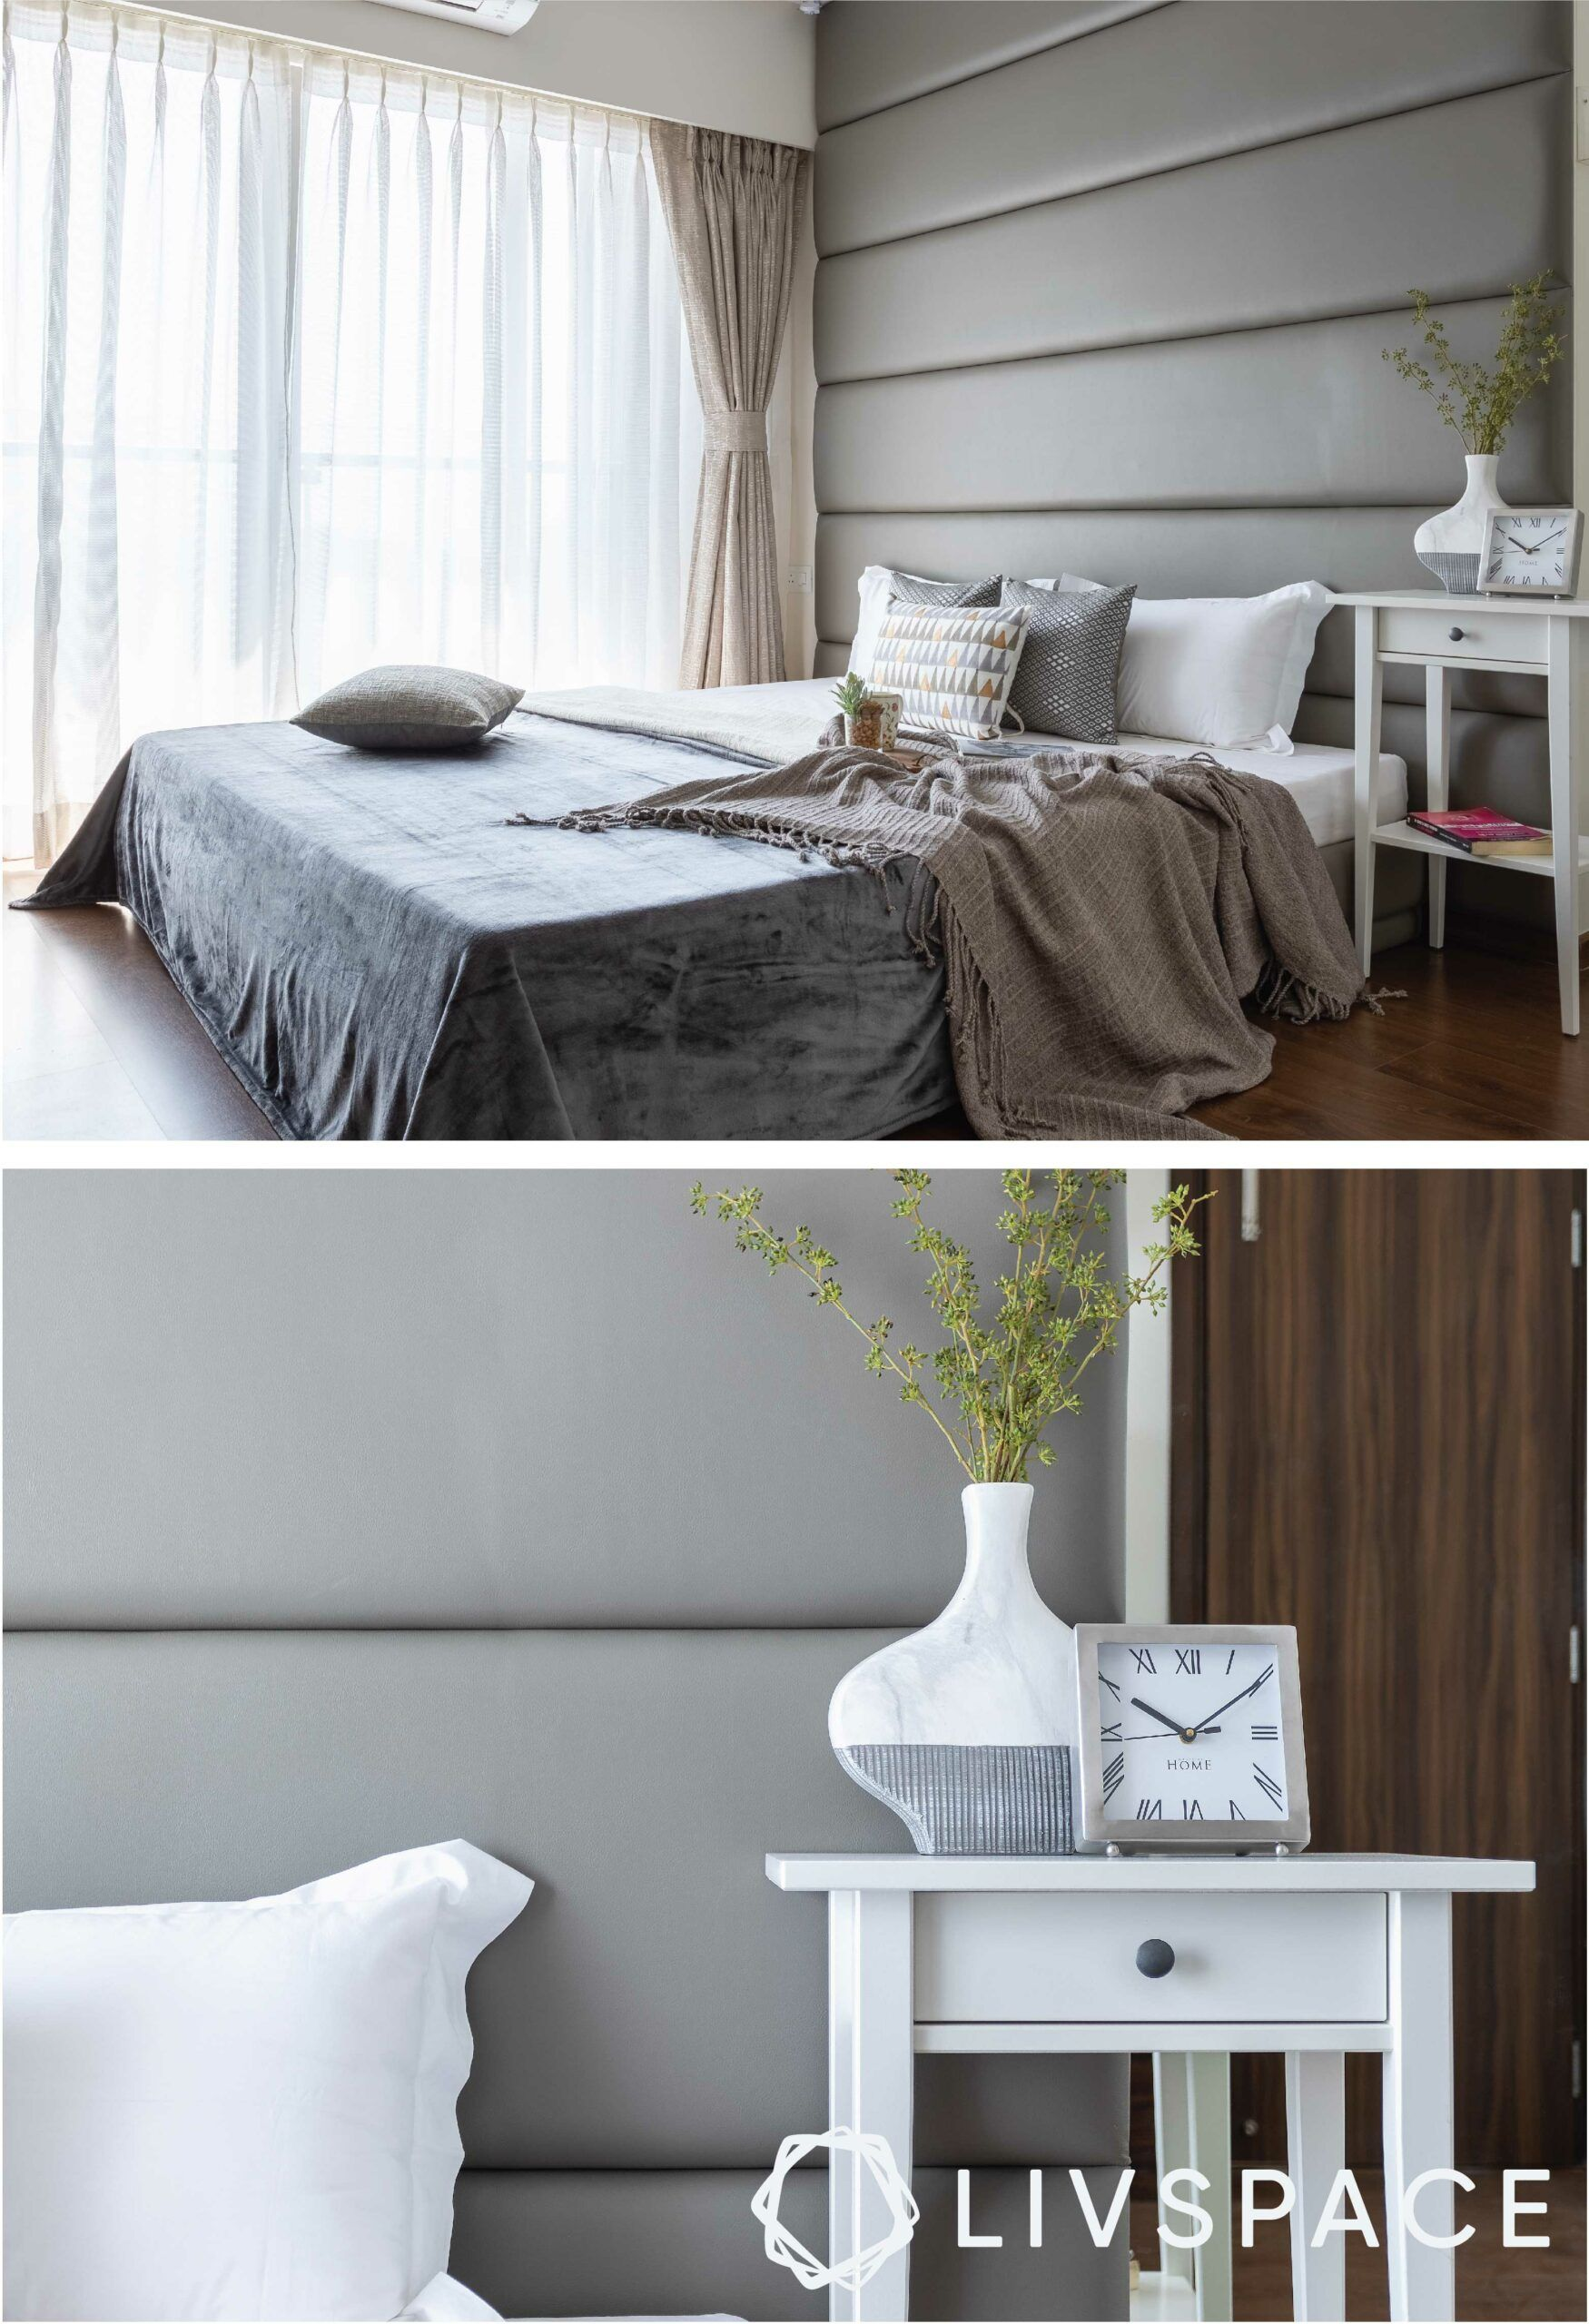 monochrome-large-headboard-bed-white-table